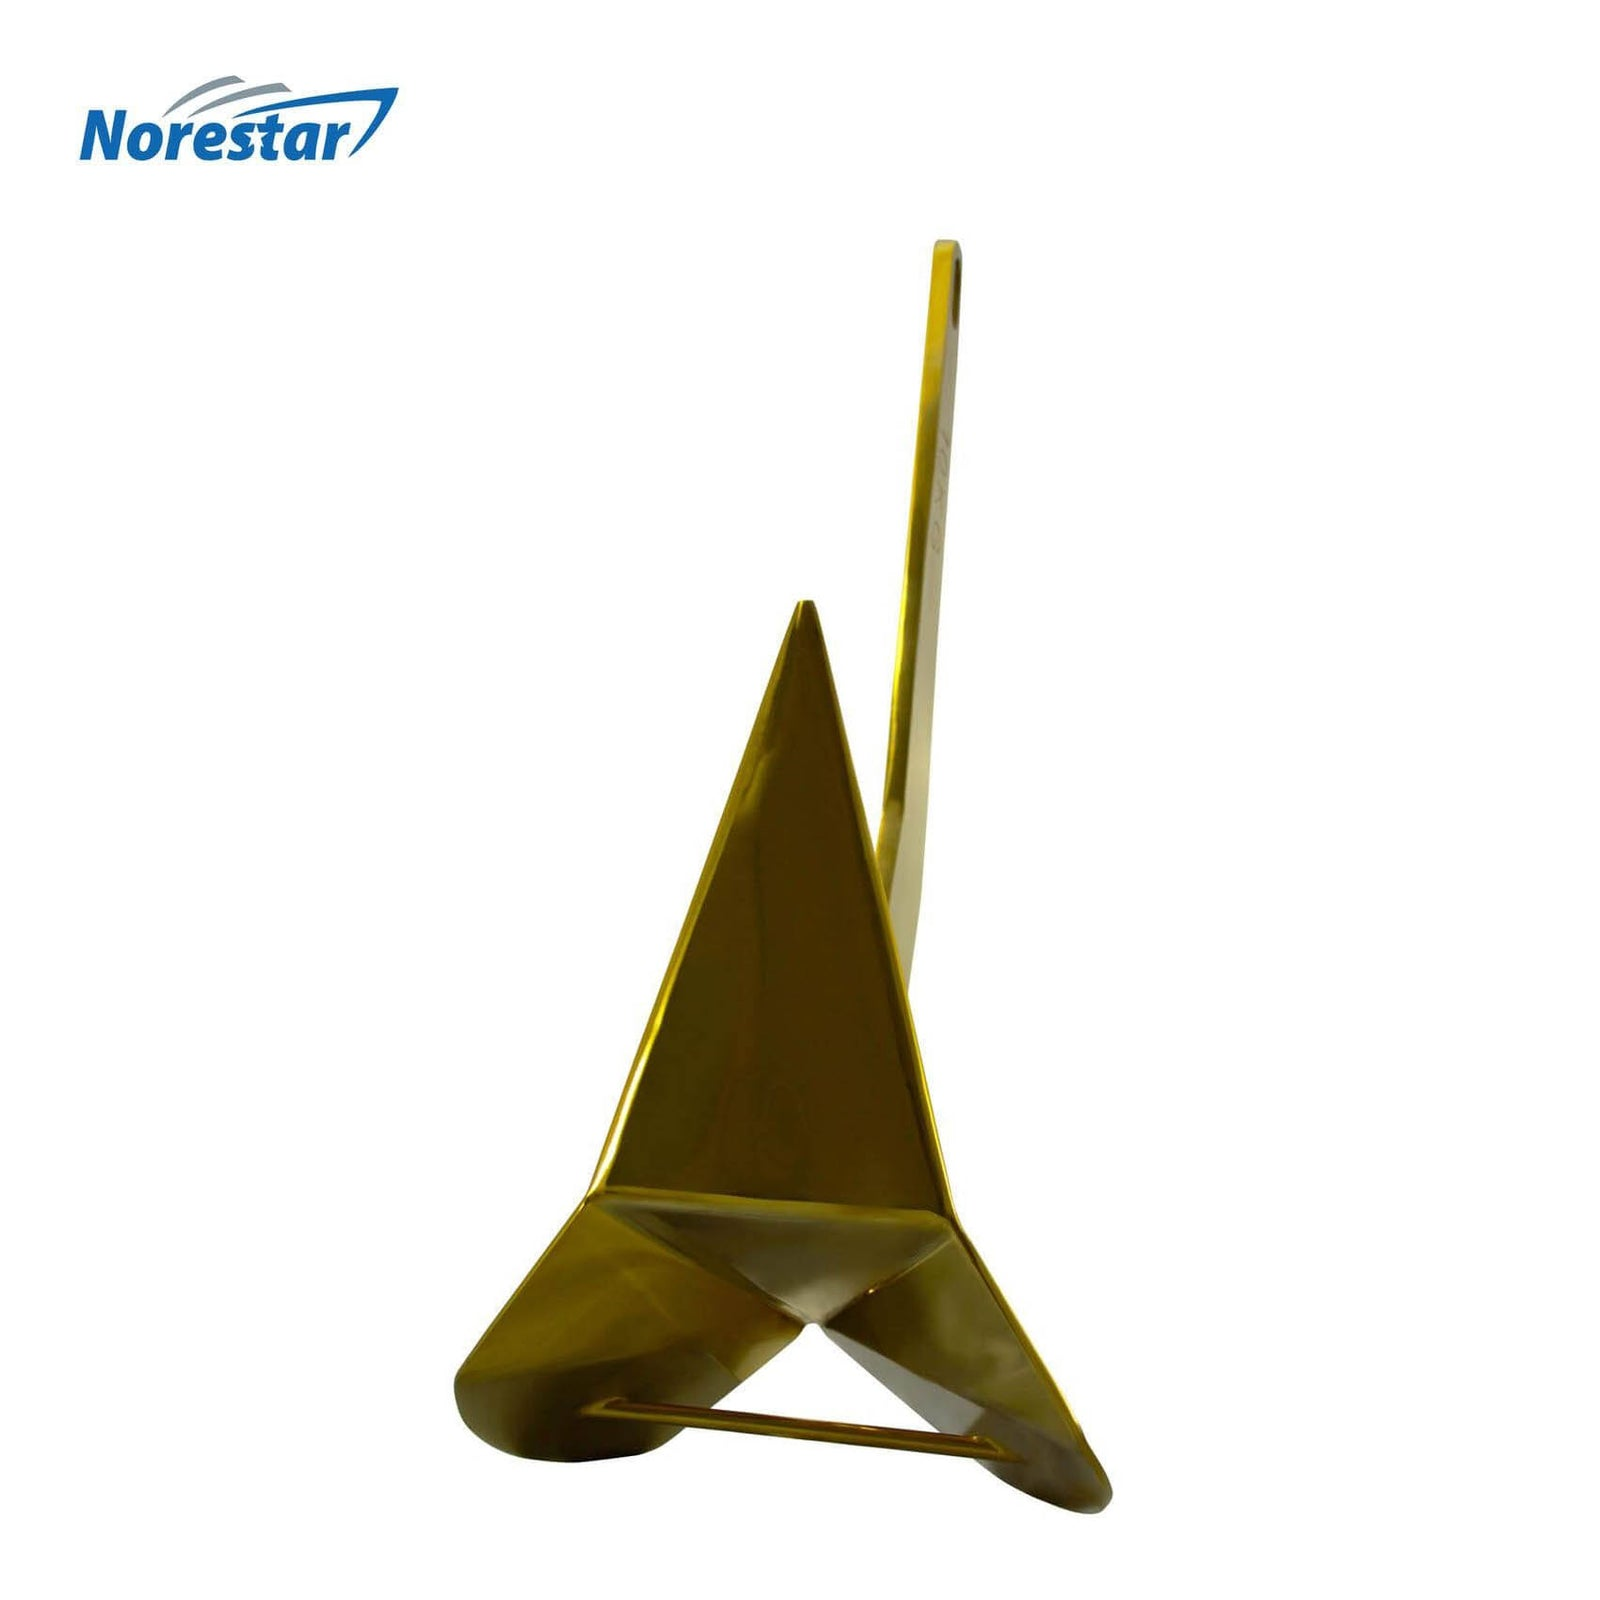 Norestar Stainless Steel Rainbow Wing-Style Boat Anchor Gold Bottom